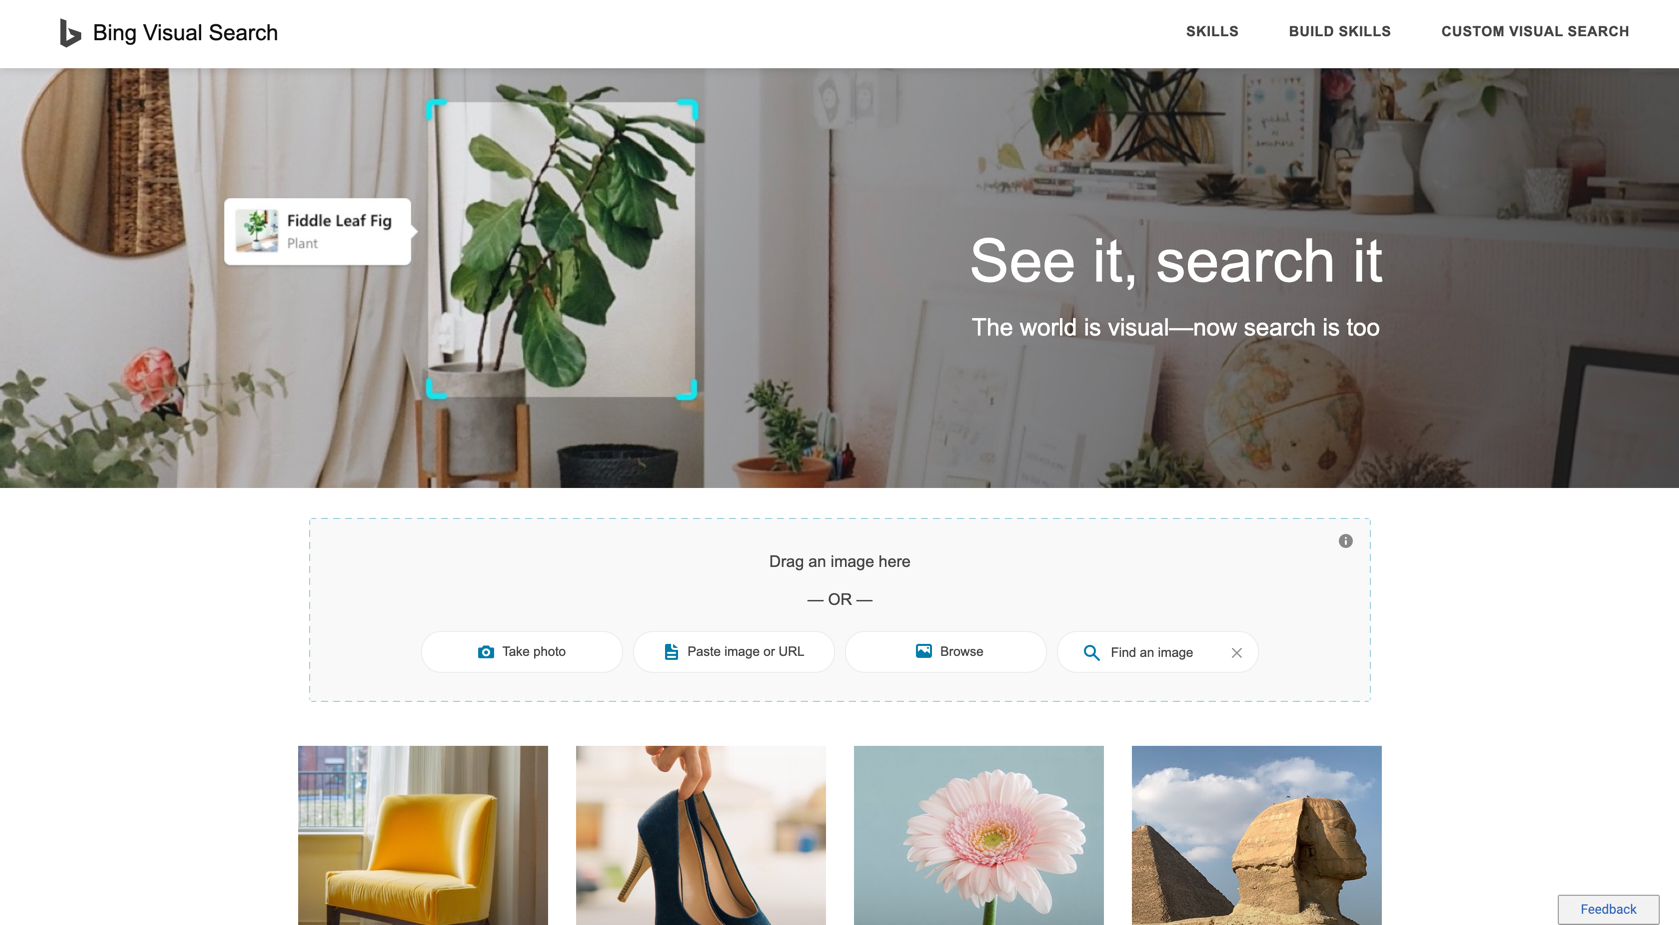 3-ways-visual-search-can-boost-your-brand-1 3 Ways Visual Search Can Boost Your Brand